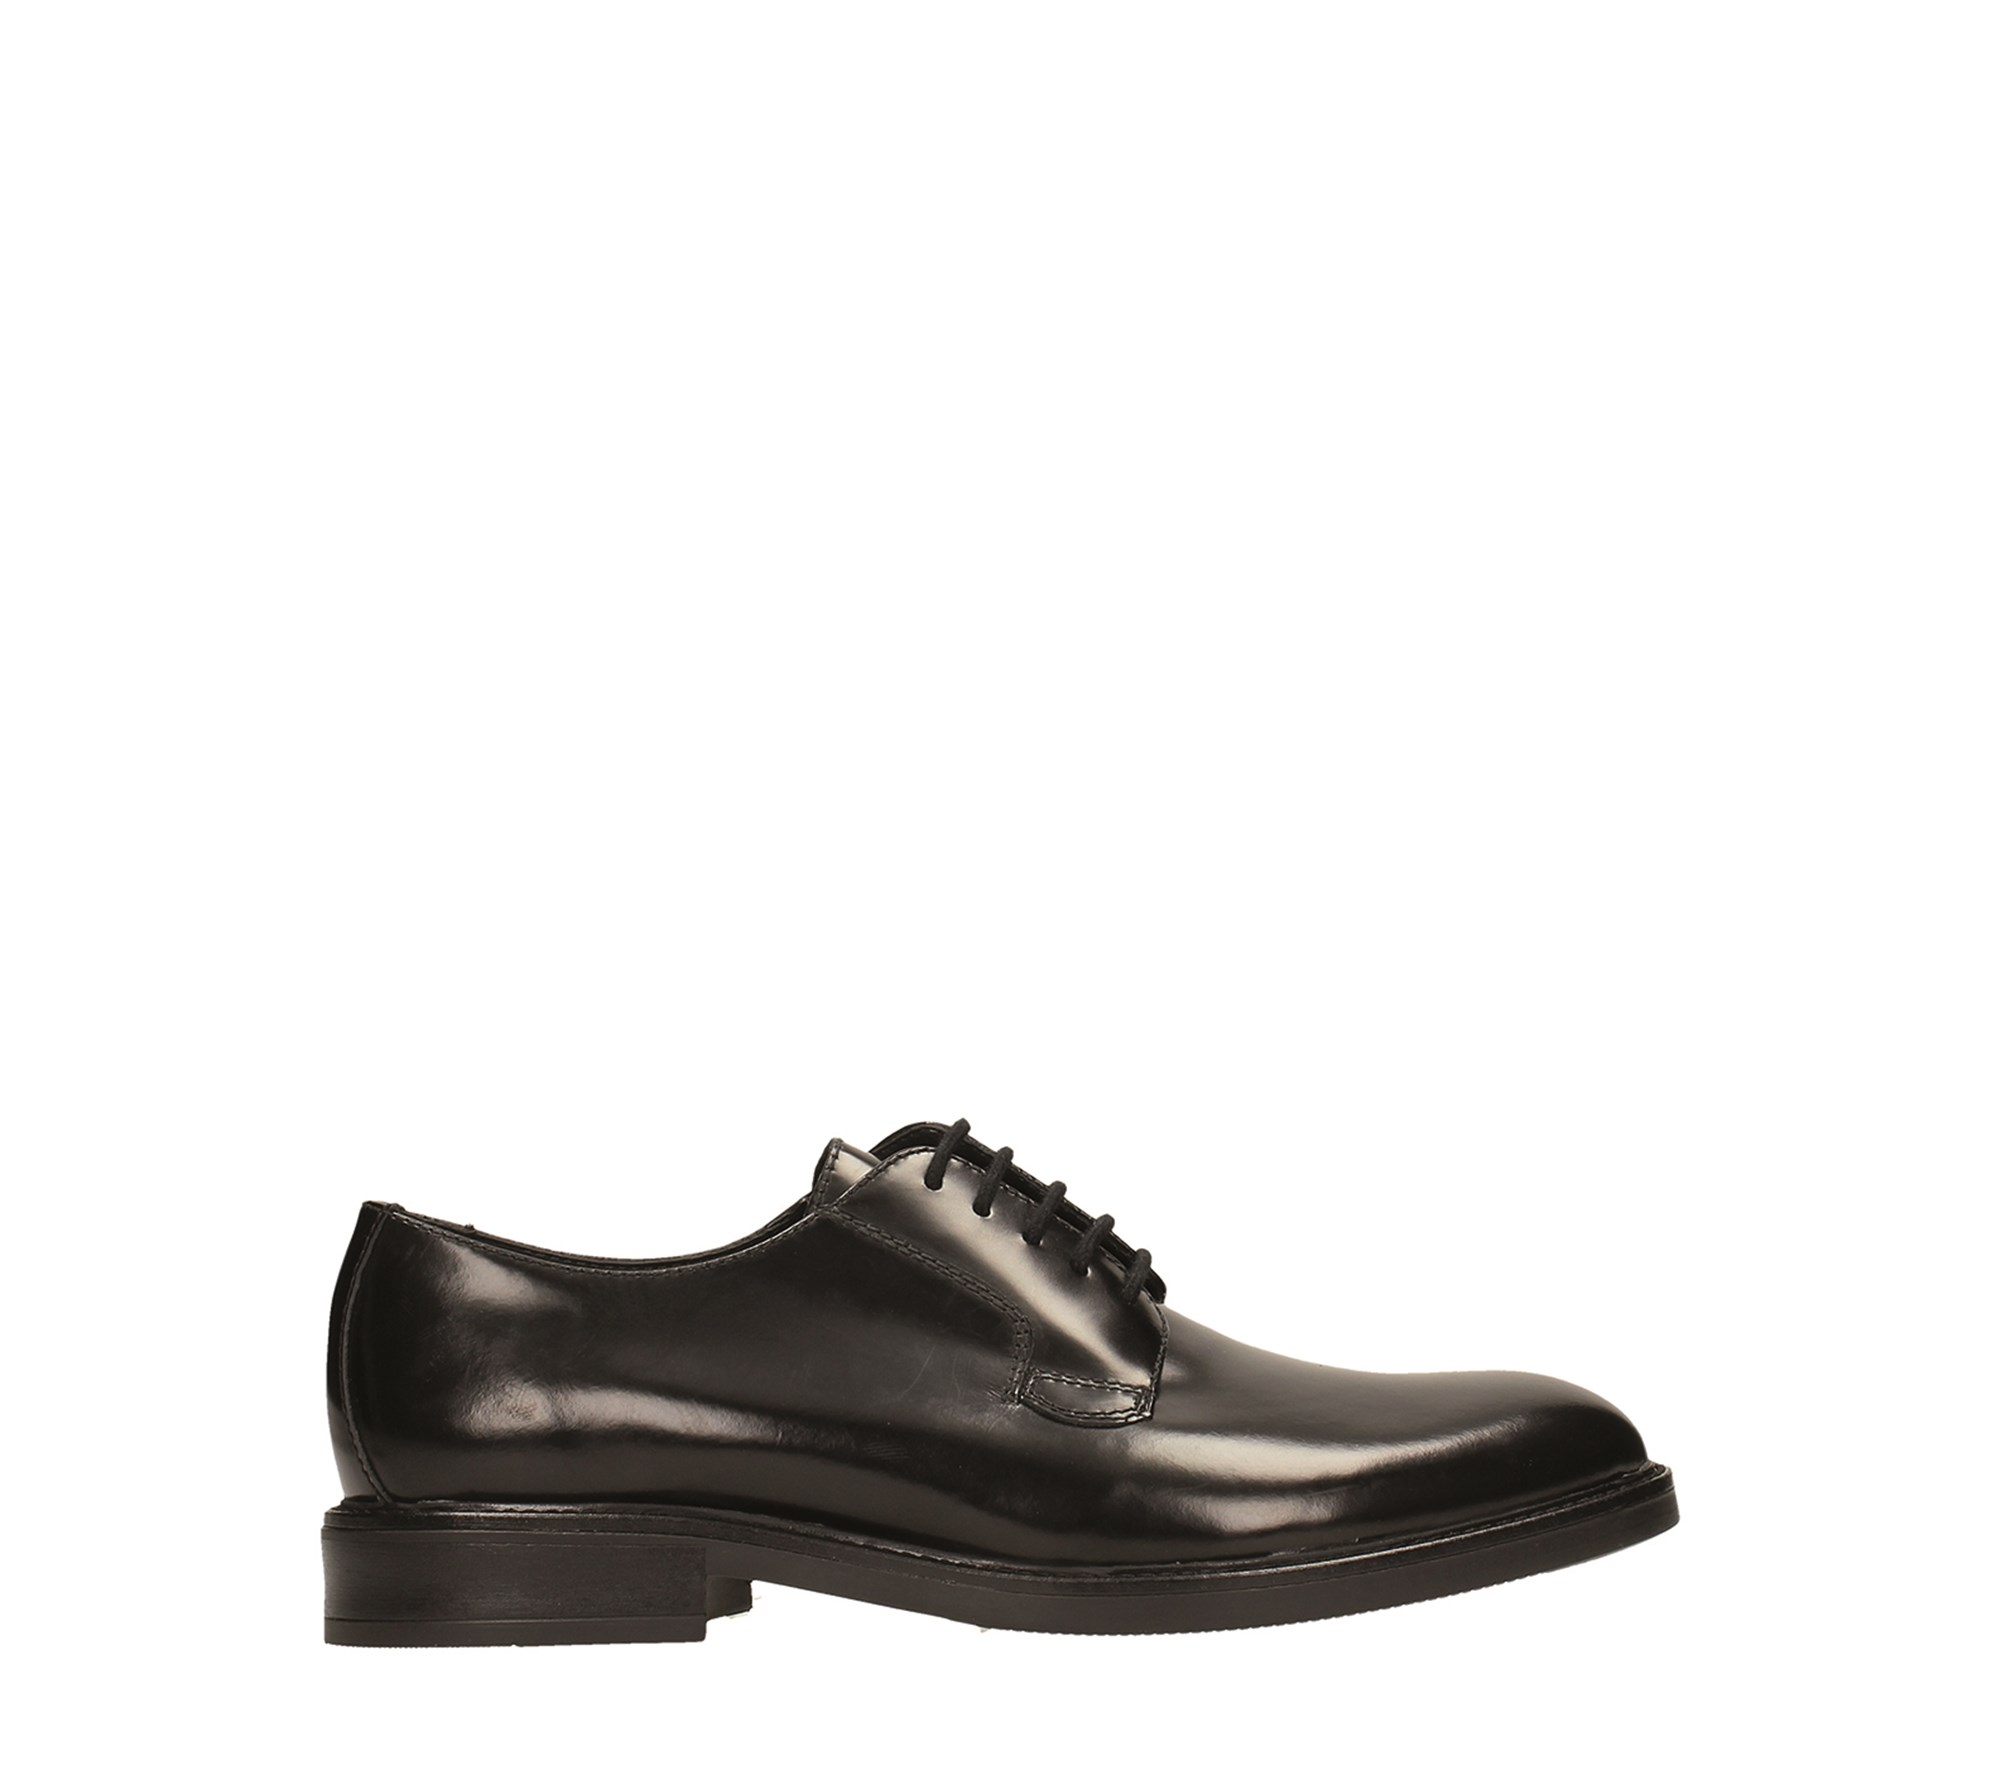 Tata Italia Shoes Man Derby MS-406R15